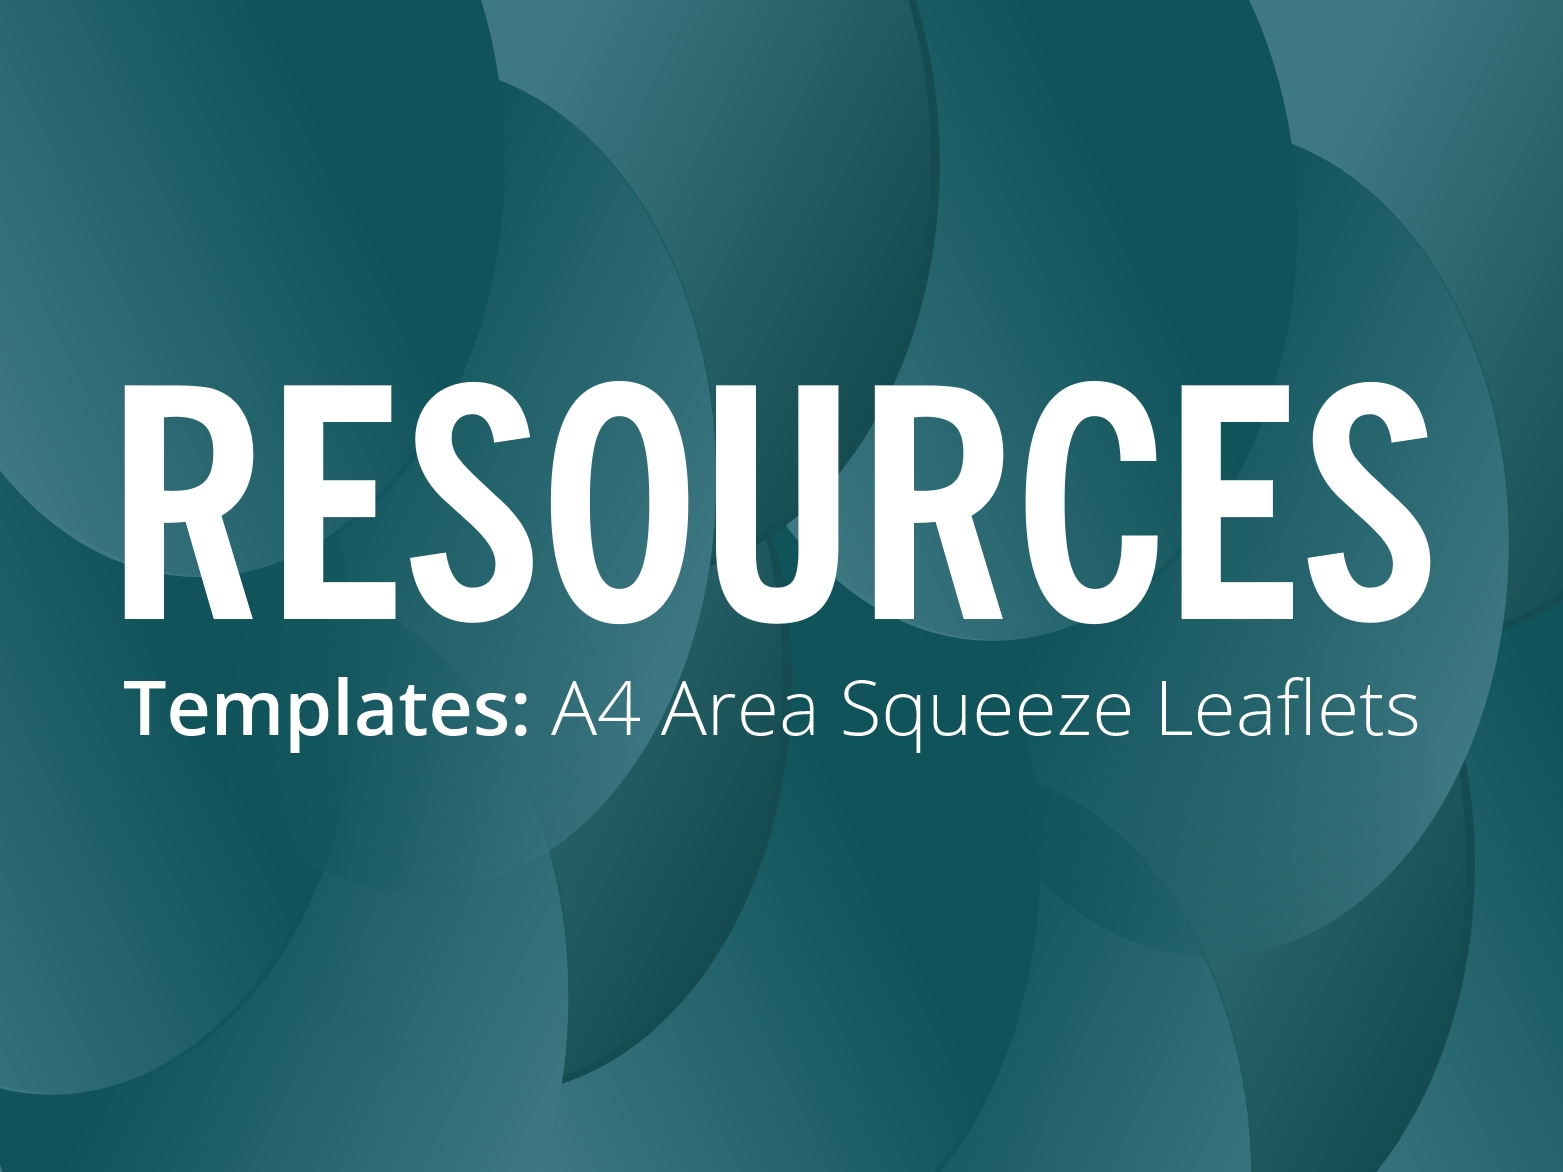 RESOURCES: Area squeeze leaflet (A4)